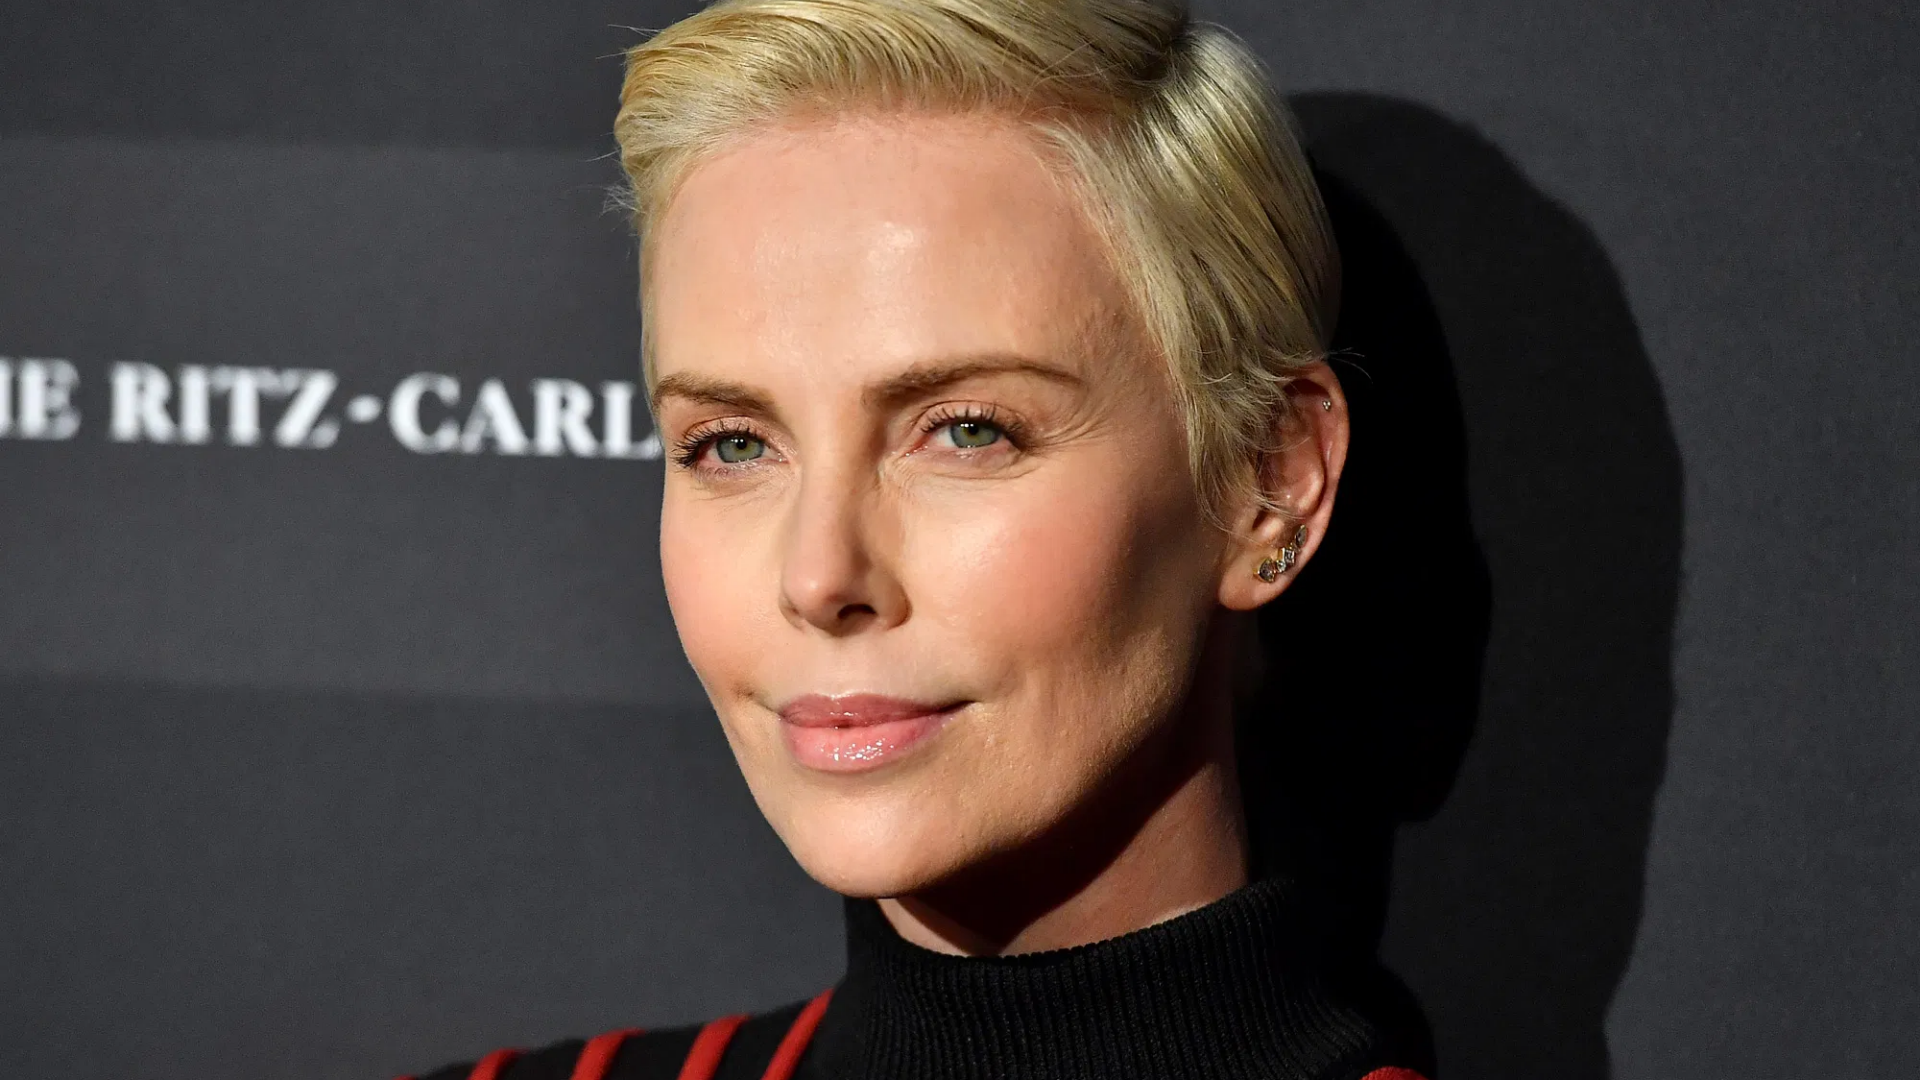 Charlize Theron on the red carpet, with a short blonde hair - wearing stripy black and red turtleneck jumper and stud earrings.